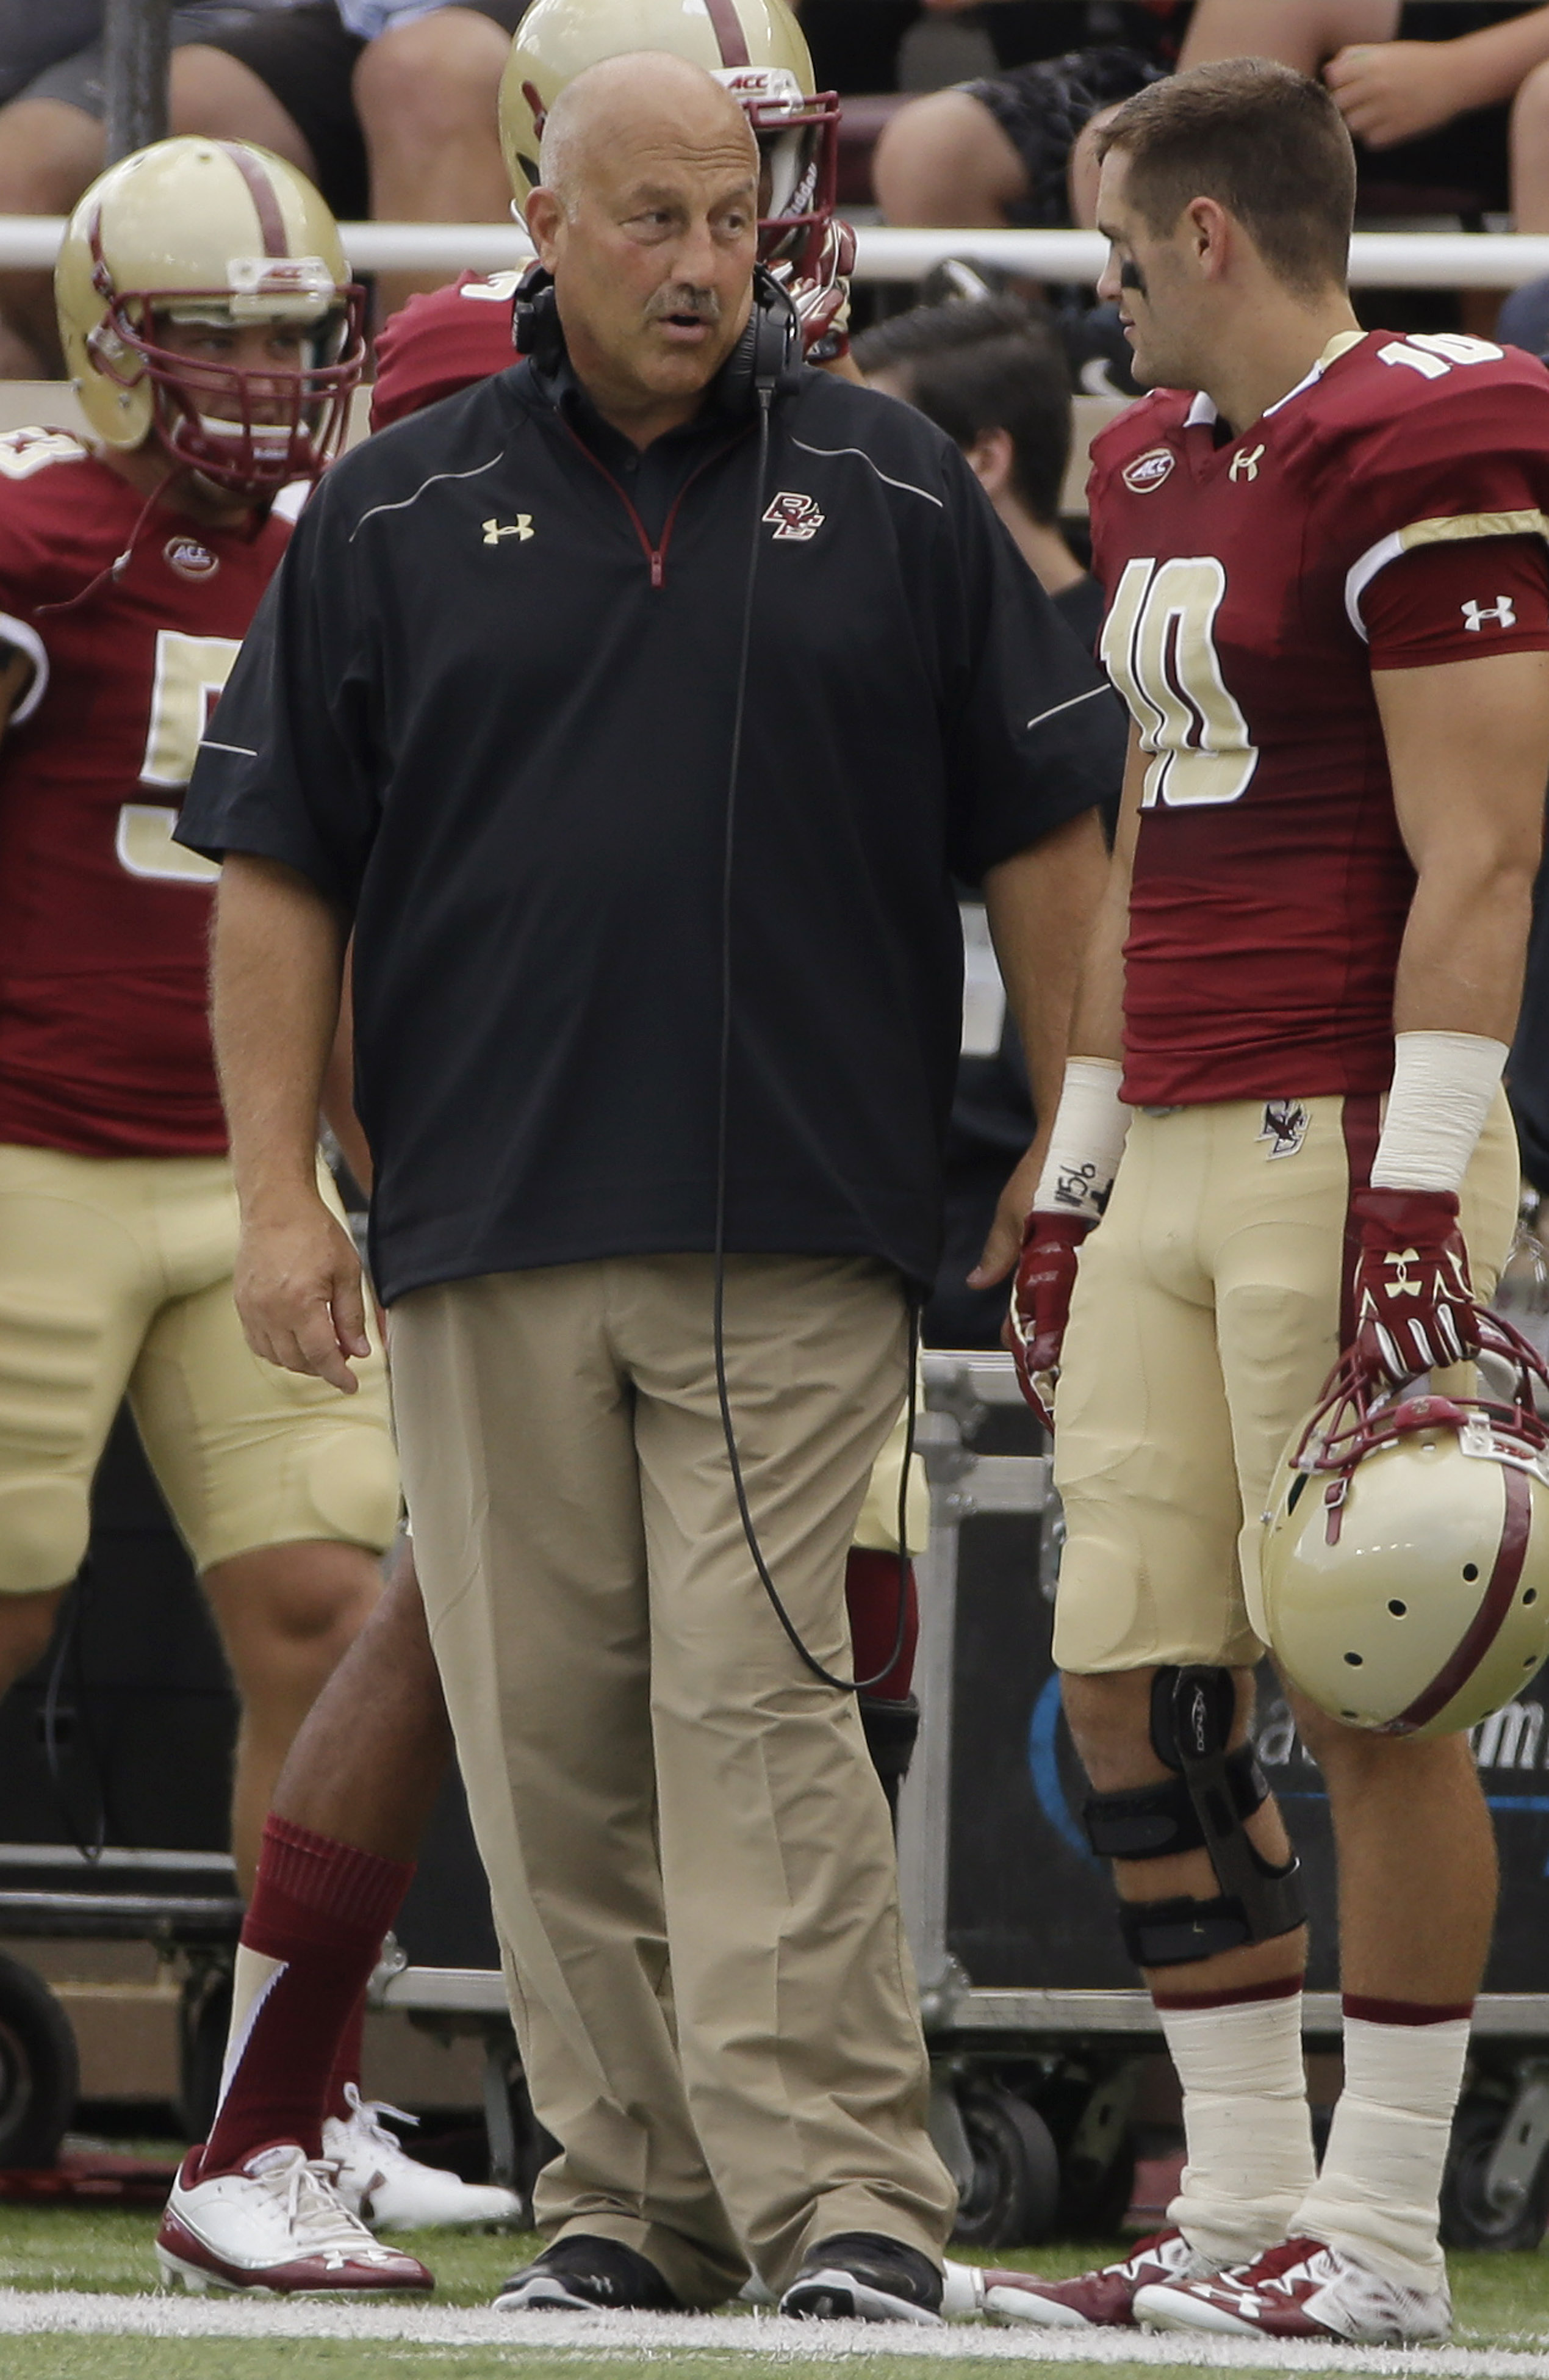 Boston College head coach Steve Addazio watches his team take a large lead over Howard during the first half of an NCAA college football game, Saturday, Sept. 12, 2015, in Boston, Mass. (AP Photo/Stephan Savoia)